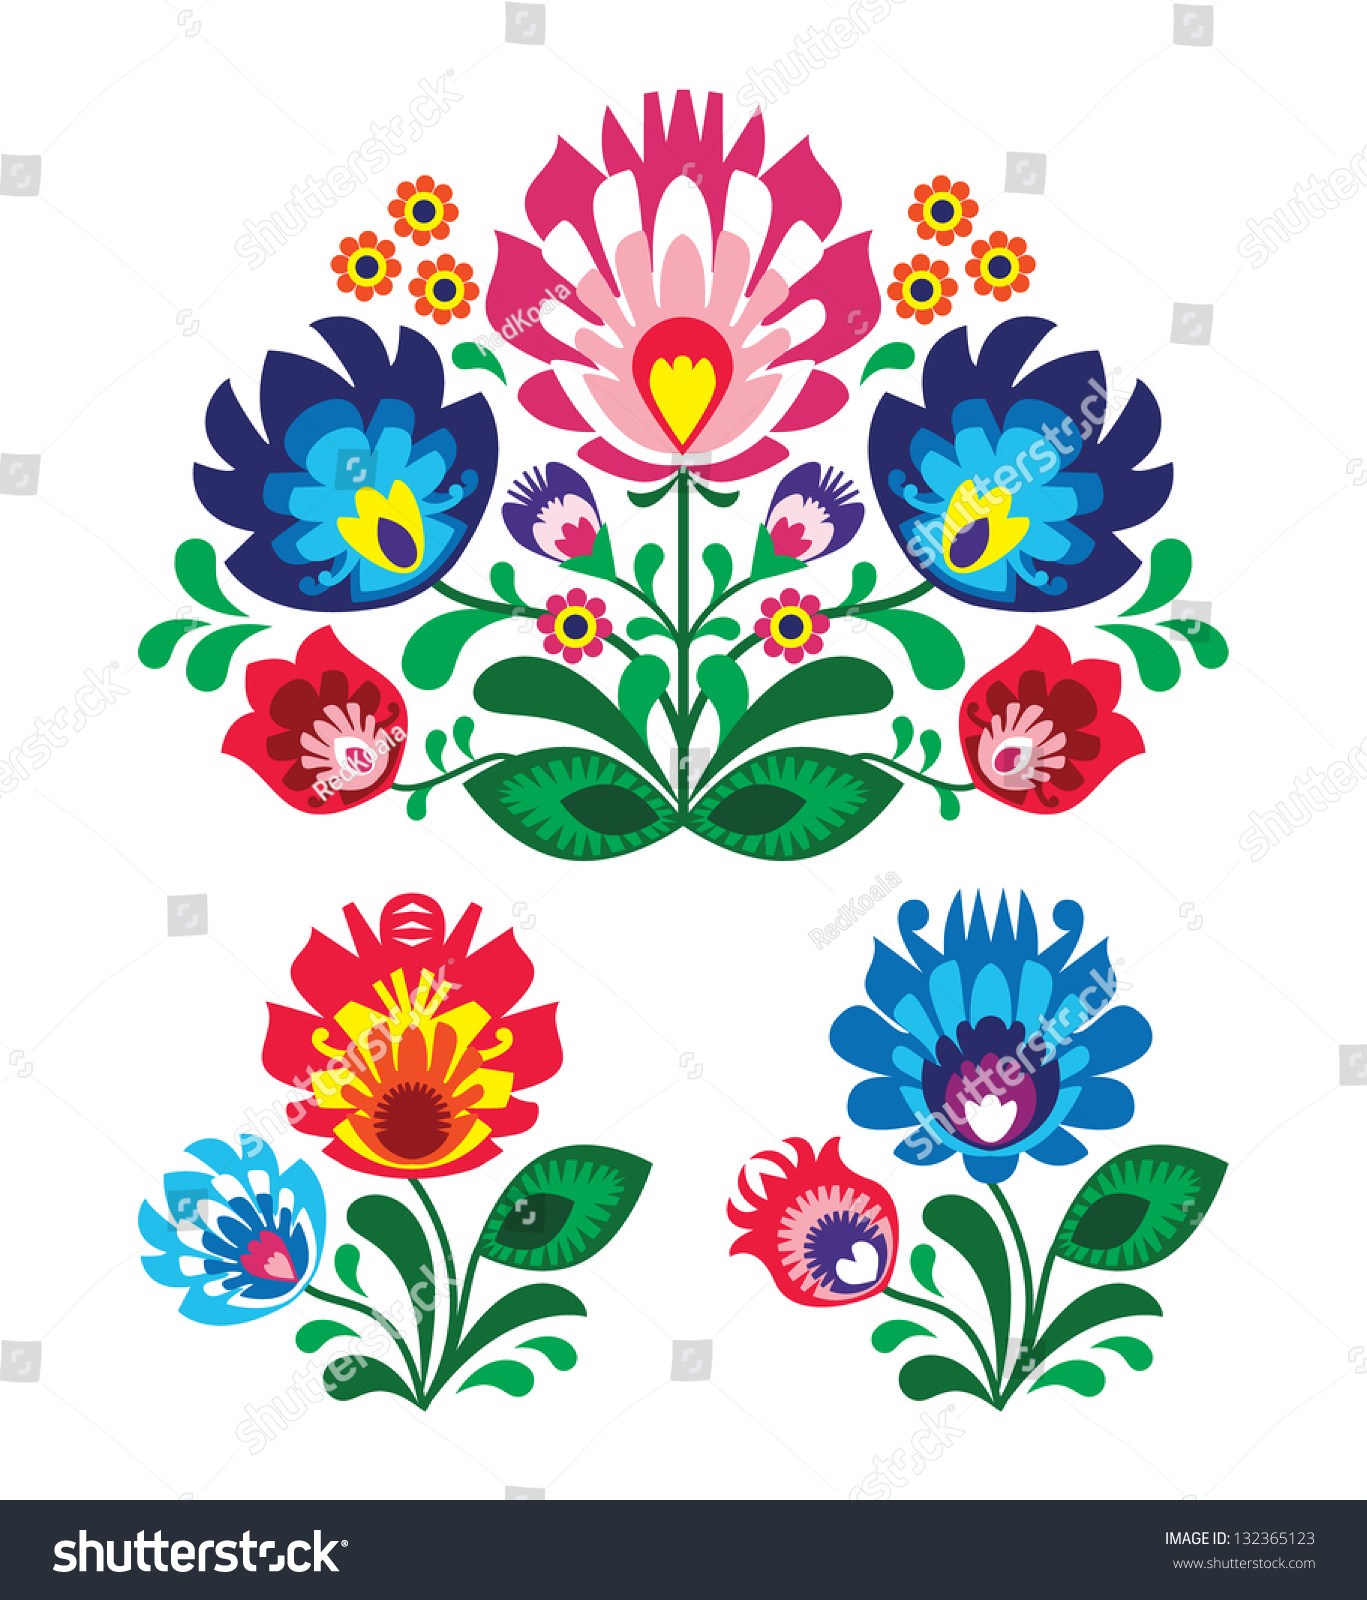 Embroidery Designs Editor Free Download